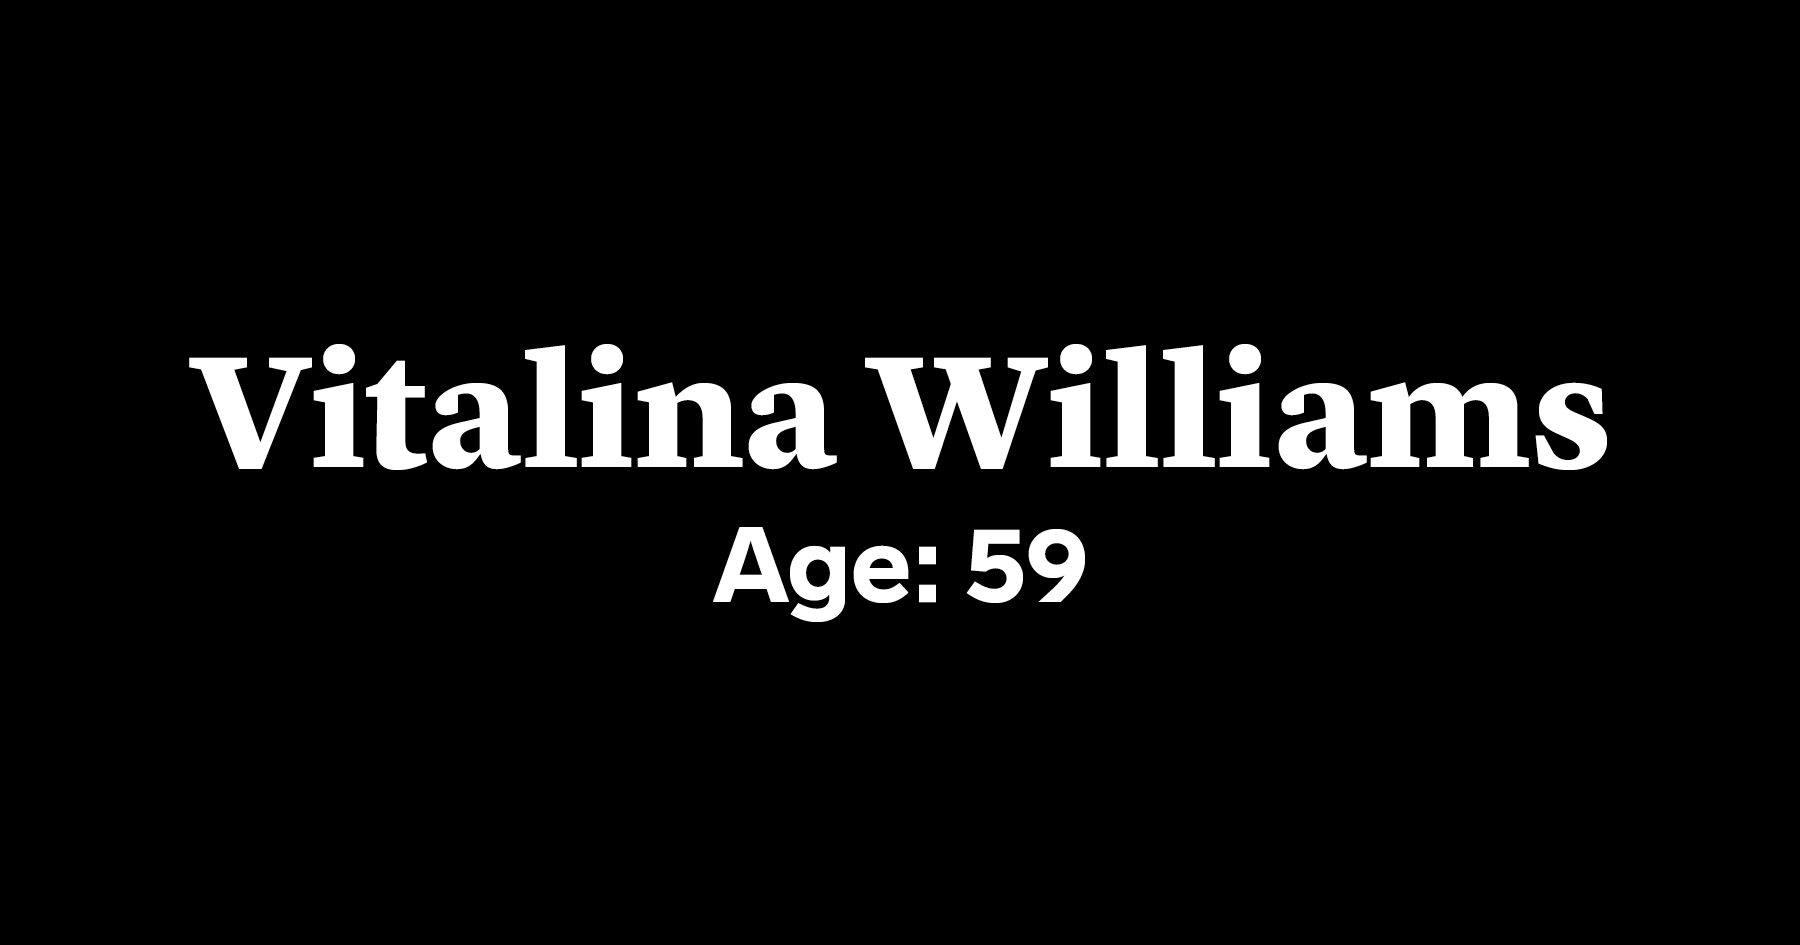 Vitalina Williams